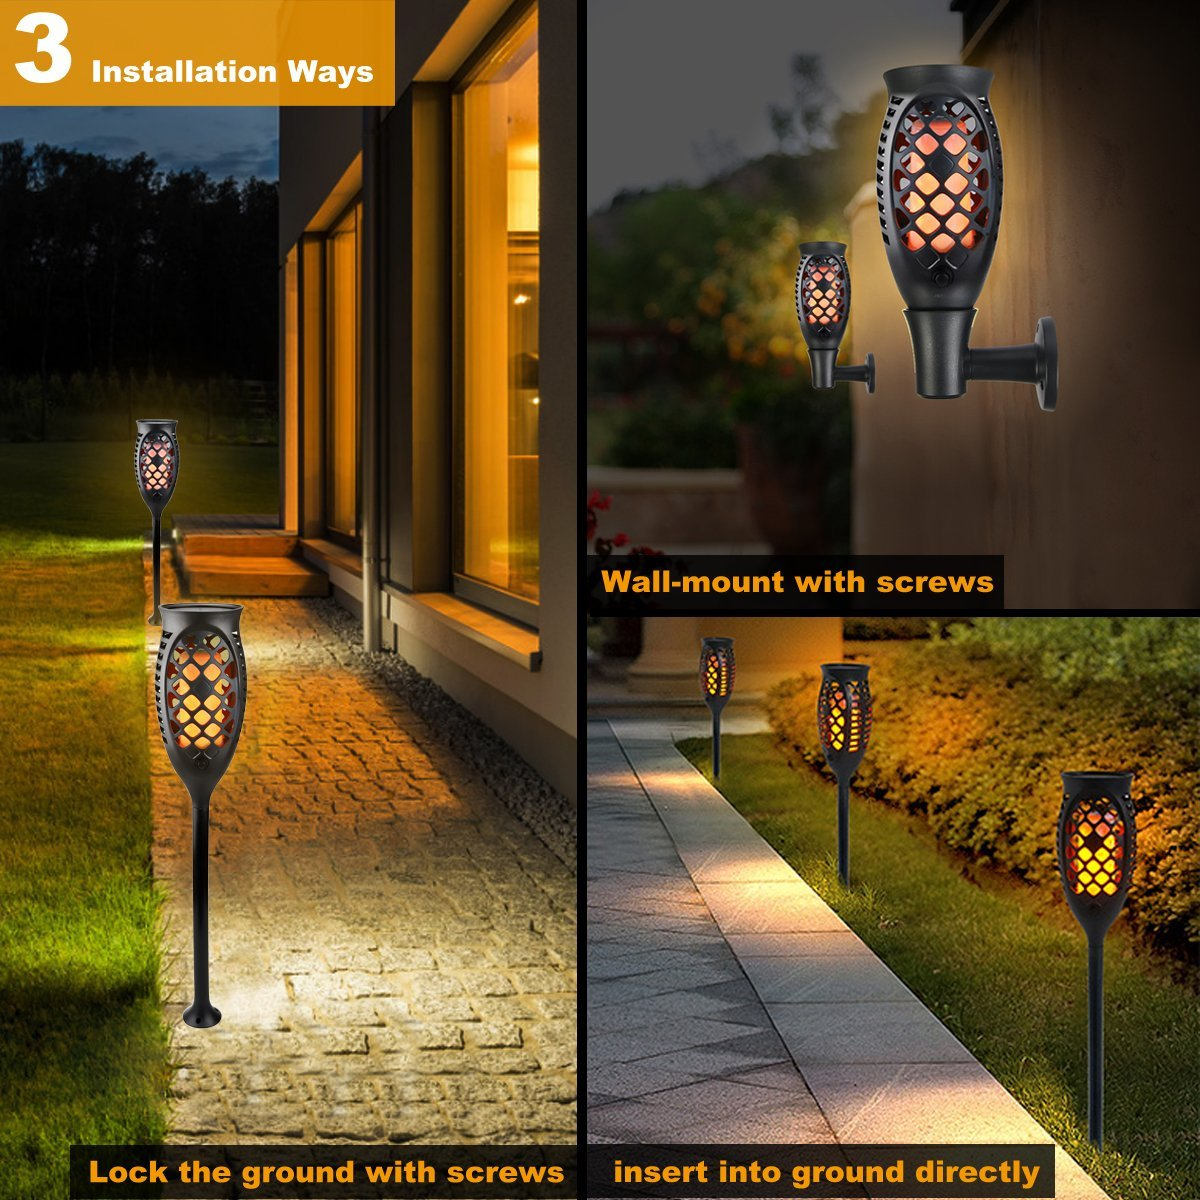 Juhefa Solar Lights Outdoor, Solar Torch Light Flickering Flame 99 LED Waterproof Garden Lighting Pathway Patio Landscape Decoration, 3 Modes & 3 Mounting Options, Dusk to Dawn Auto On/Off (4) by Juhefa (Image #2)